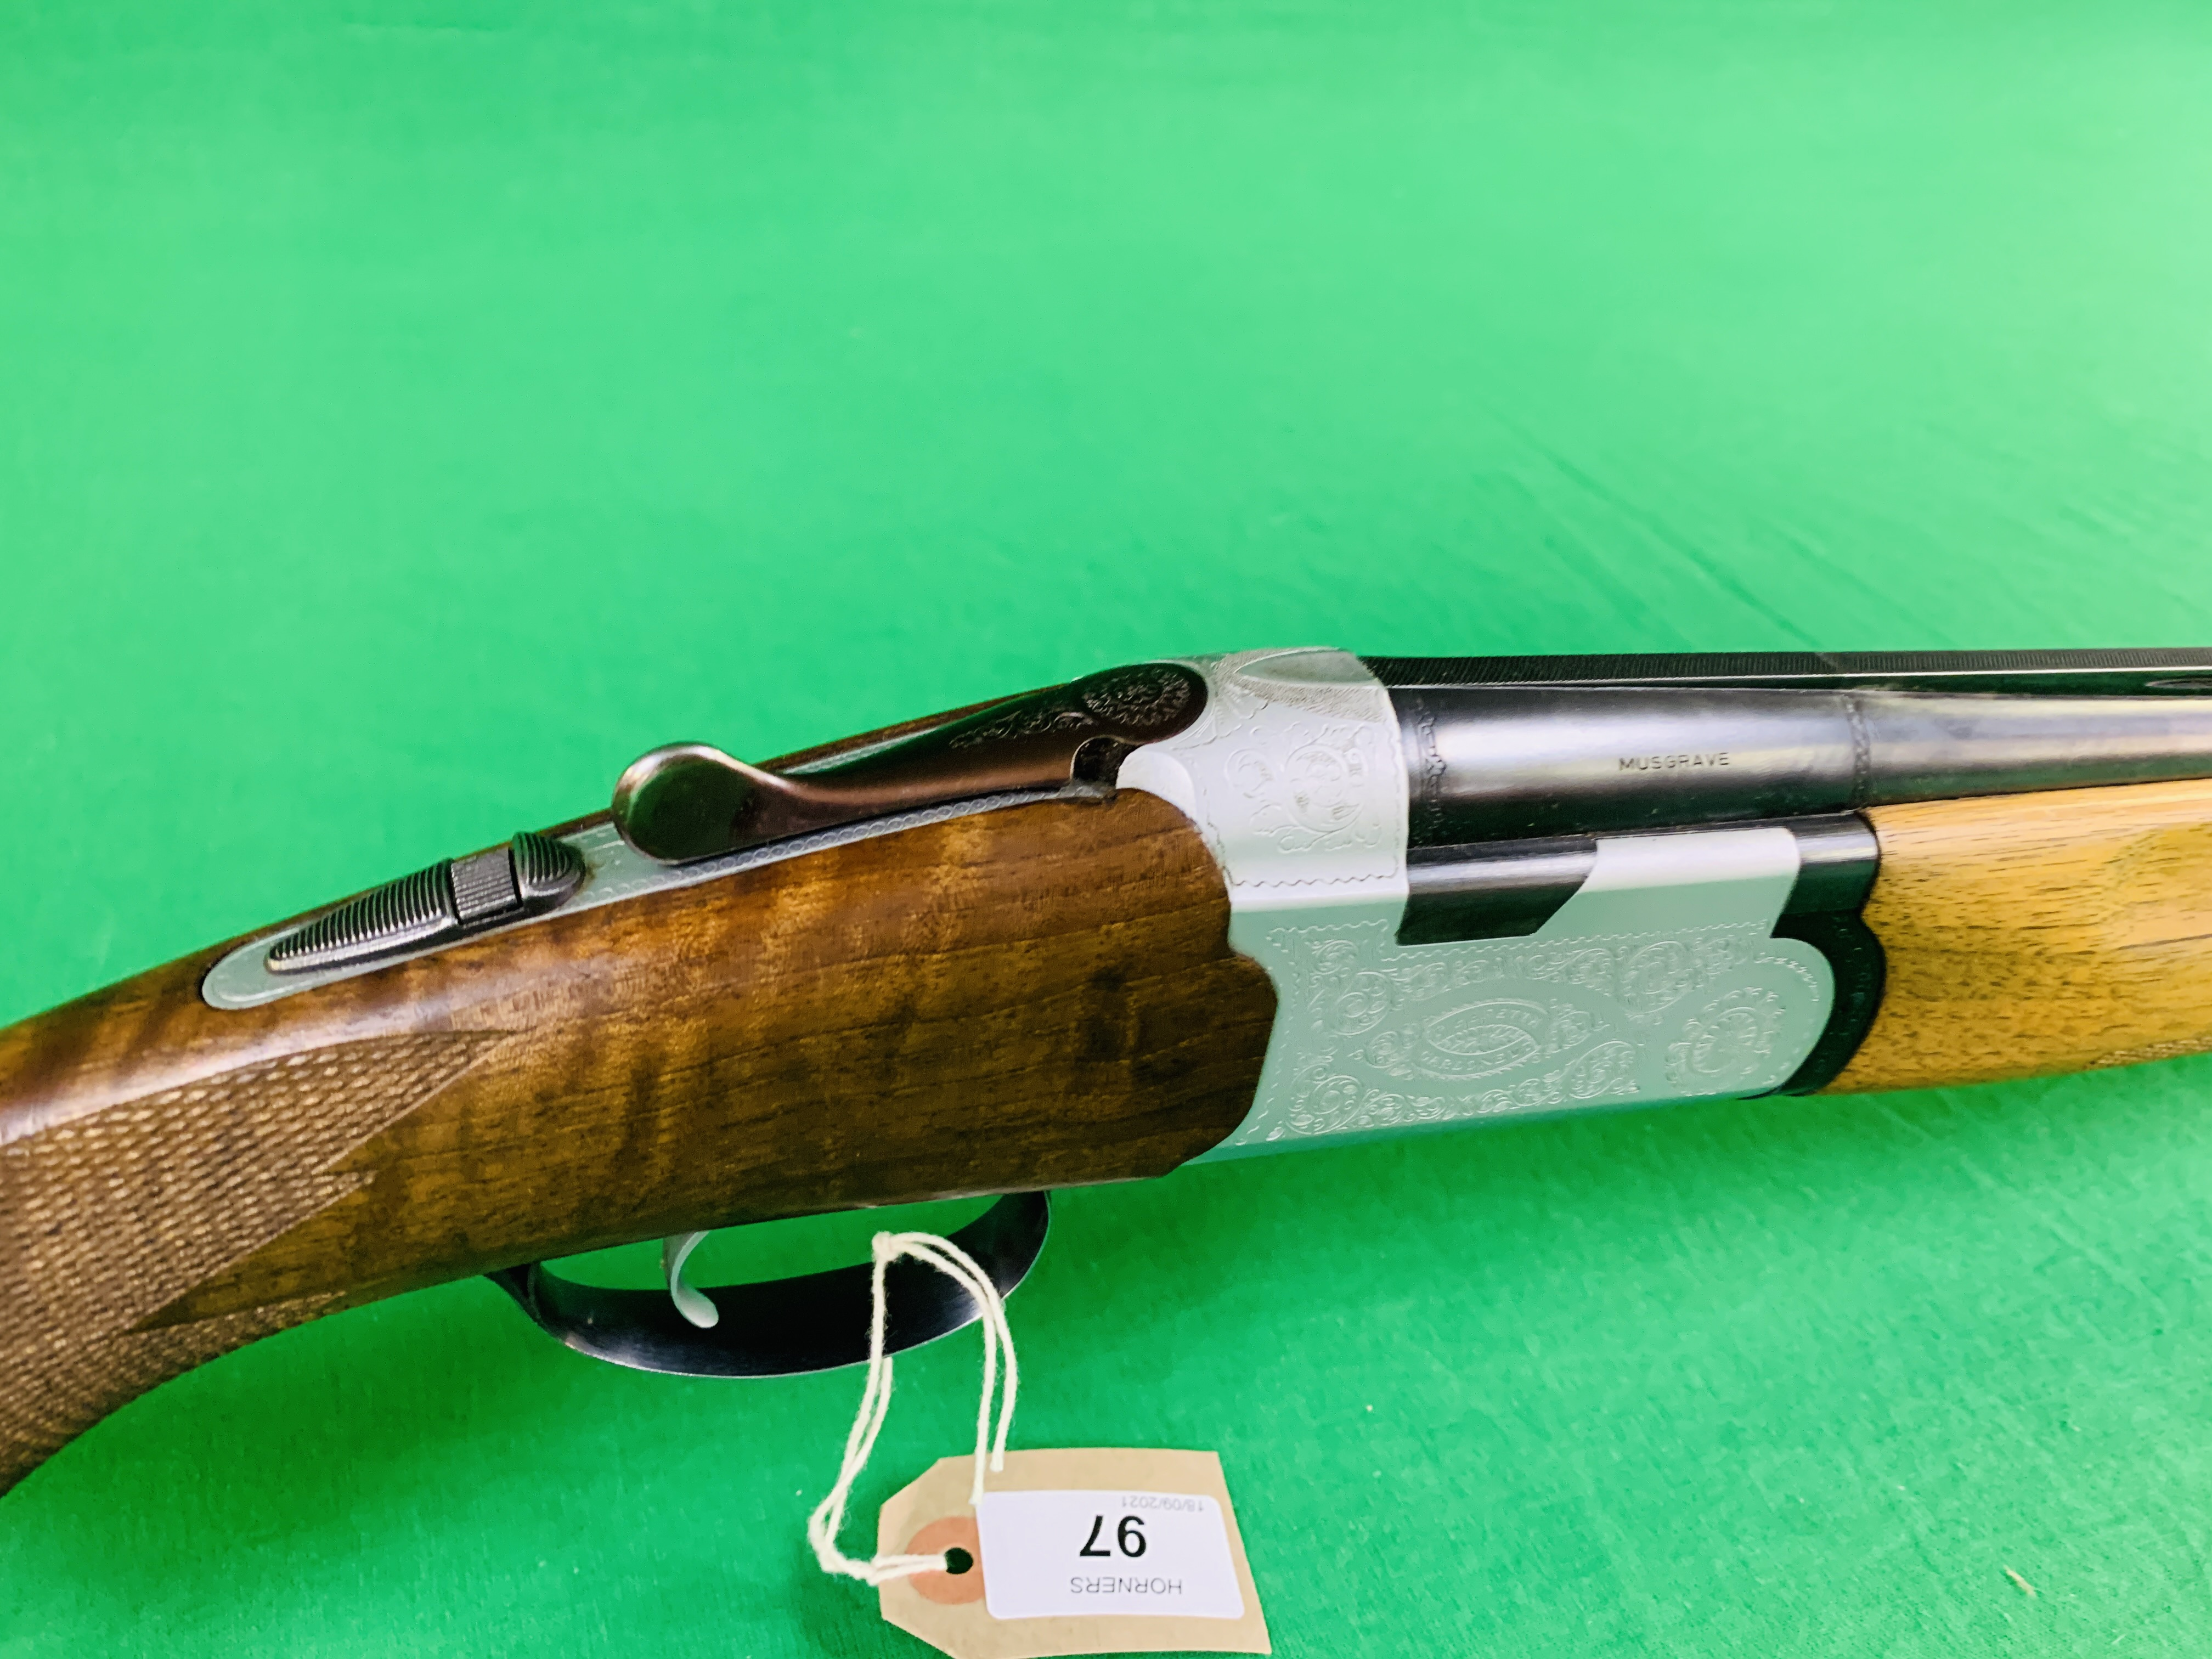 12 BORE BERETTA OVER AND UNDER SHOTGUN # B17388B WITH GUN SLEEVE - (ALL GUNS TO BE INSPECTED AND - Image 2 of 9